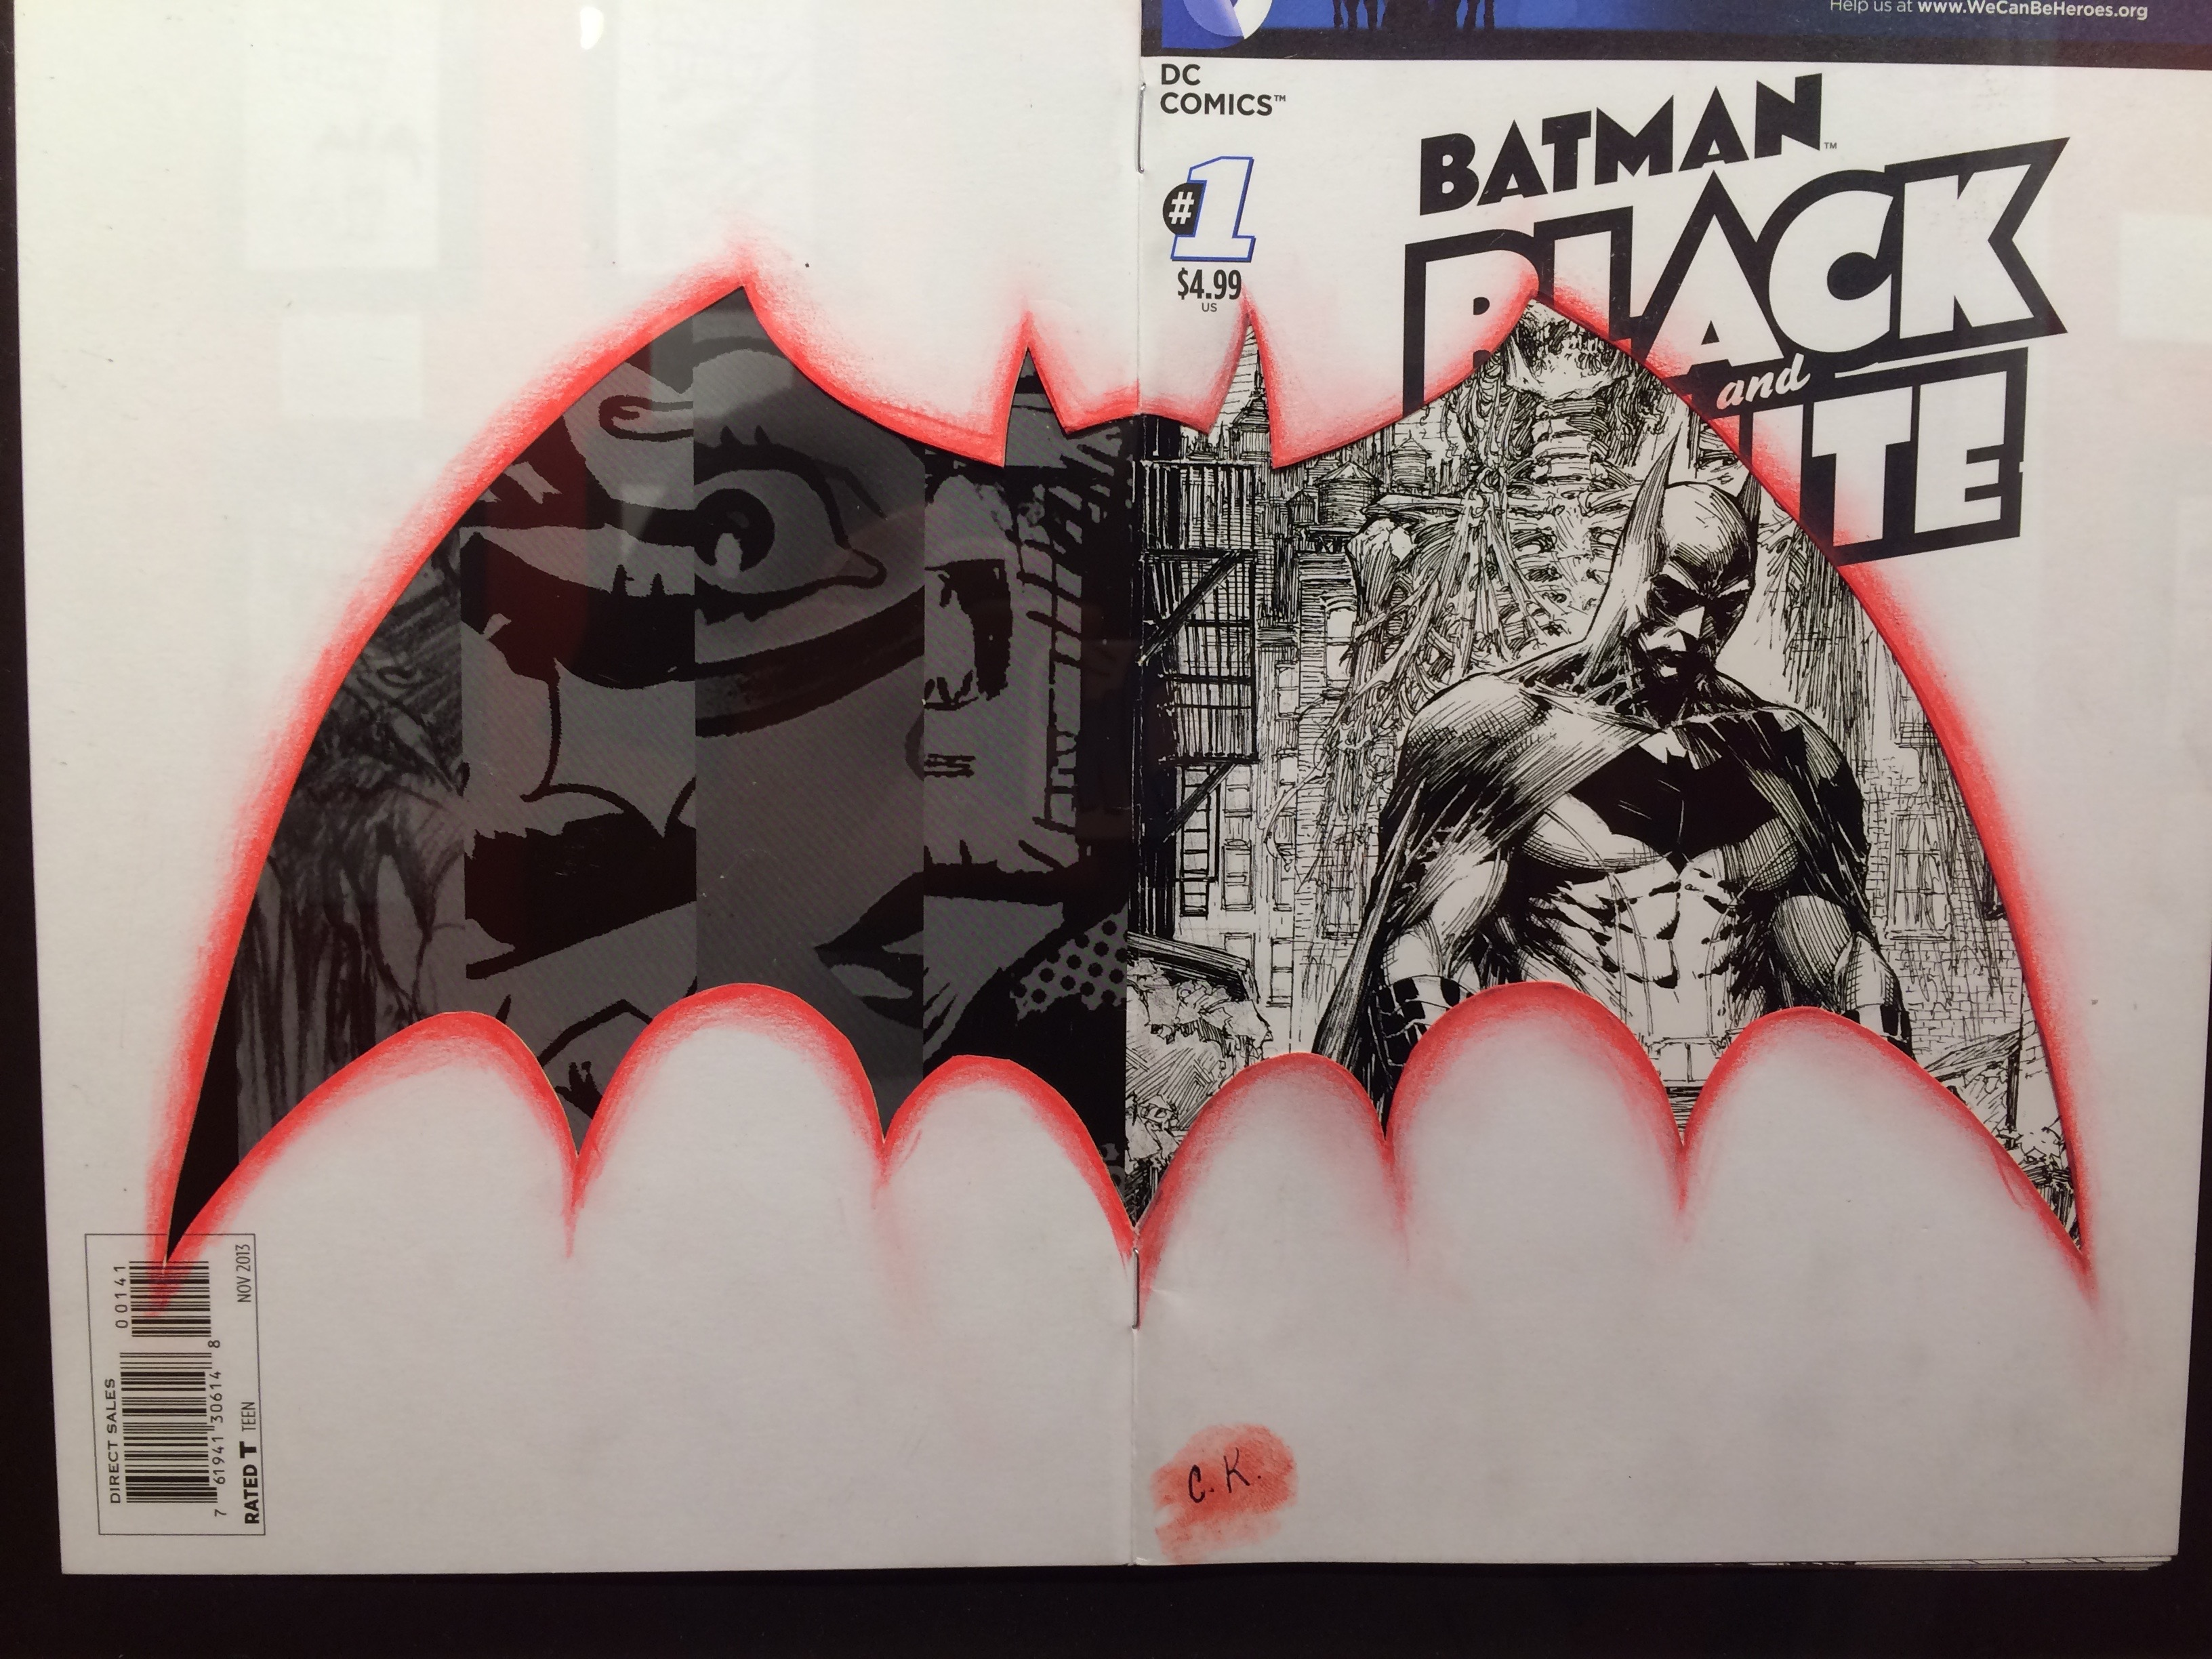 Chip's own entry in his Batman: Black and White exhibit